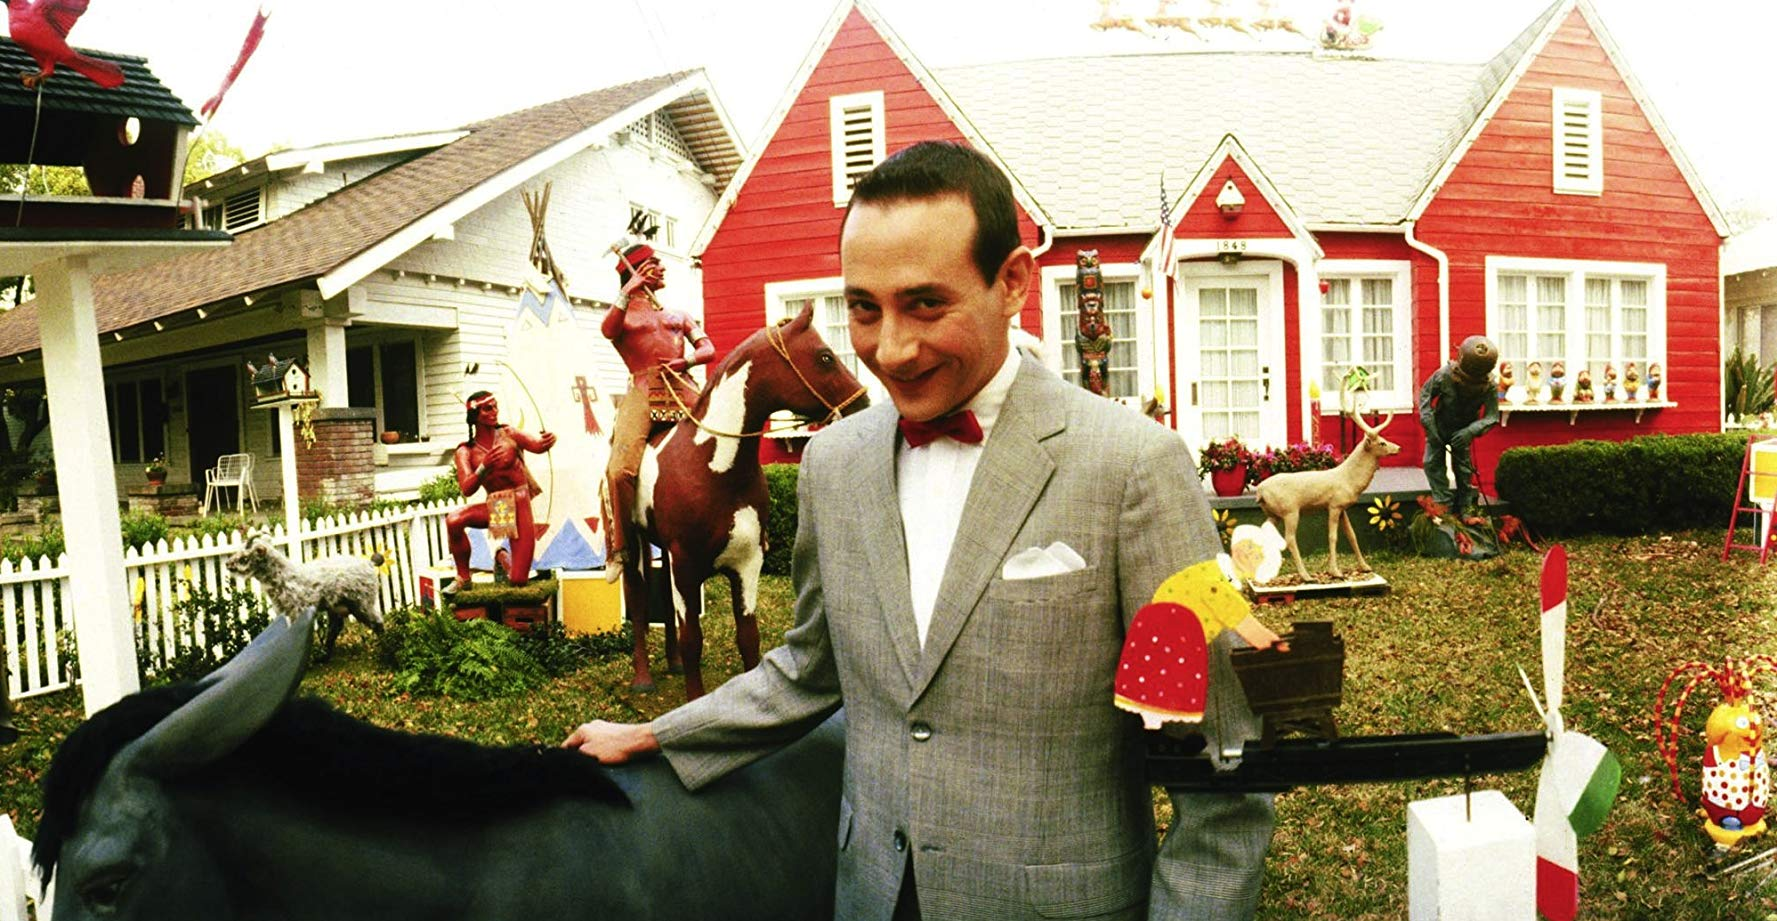 Pee-Wee Herman (Paul Reubens) in front of his kitsch house in Pee-Wee's Big Adventure (1985)